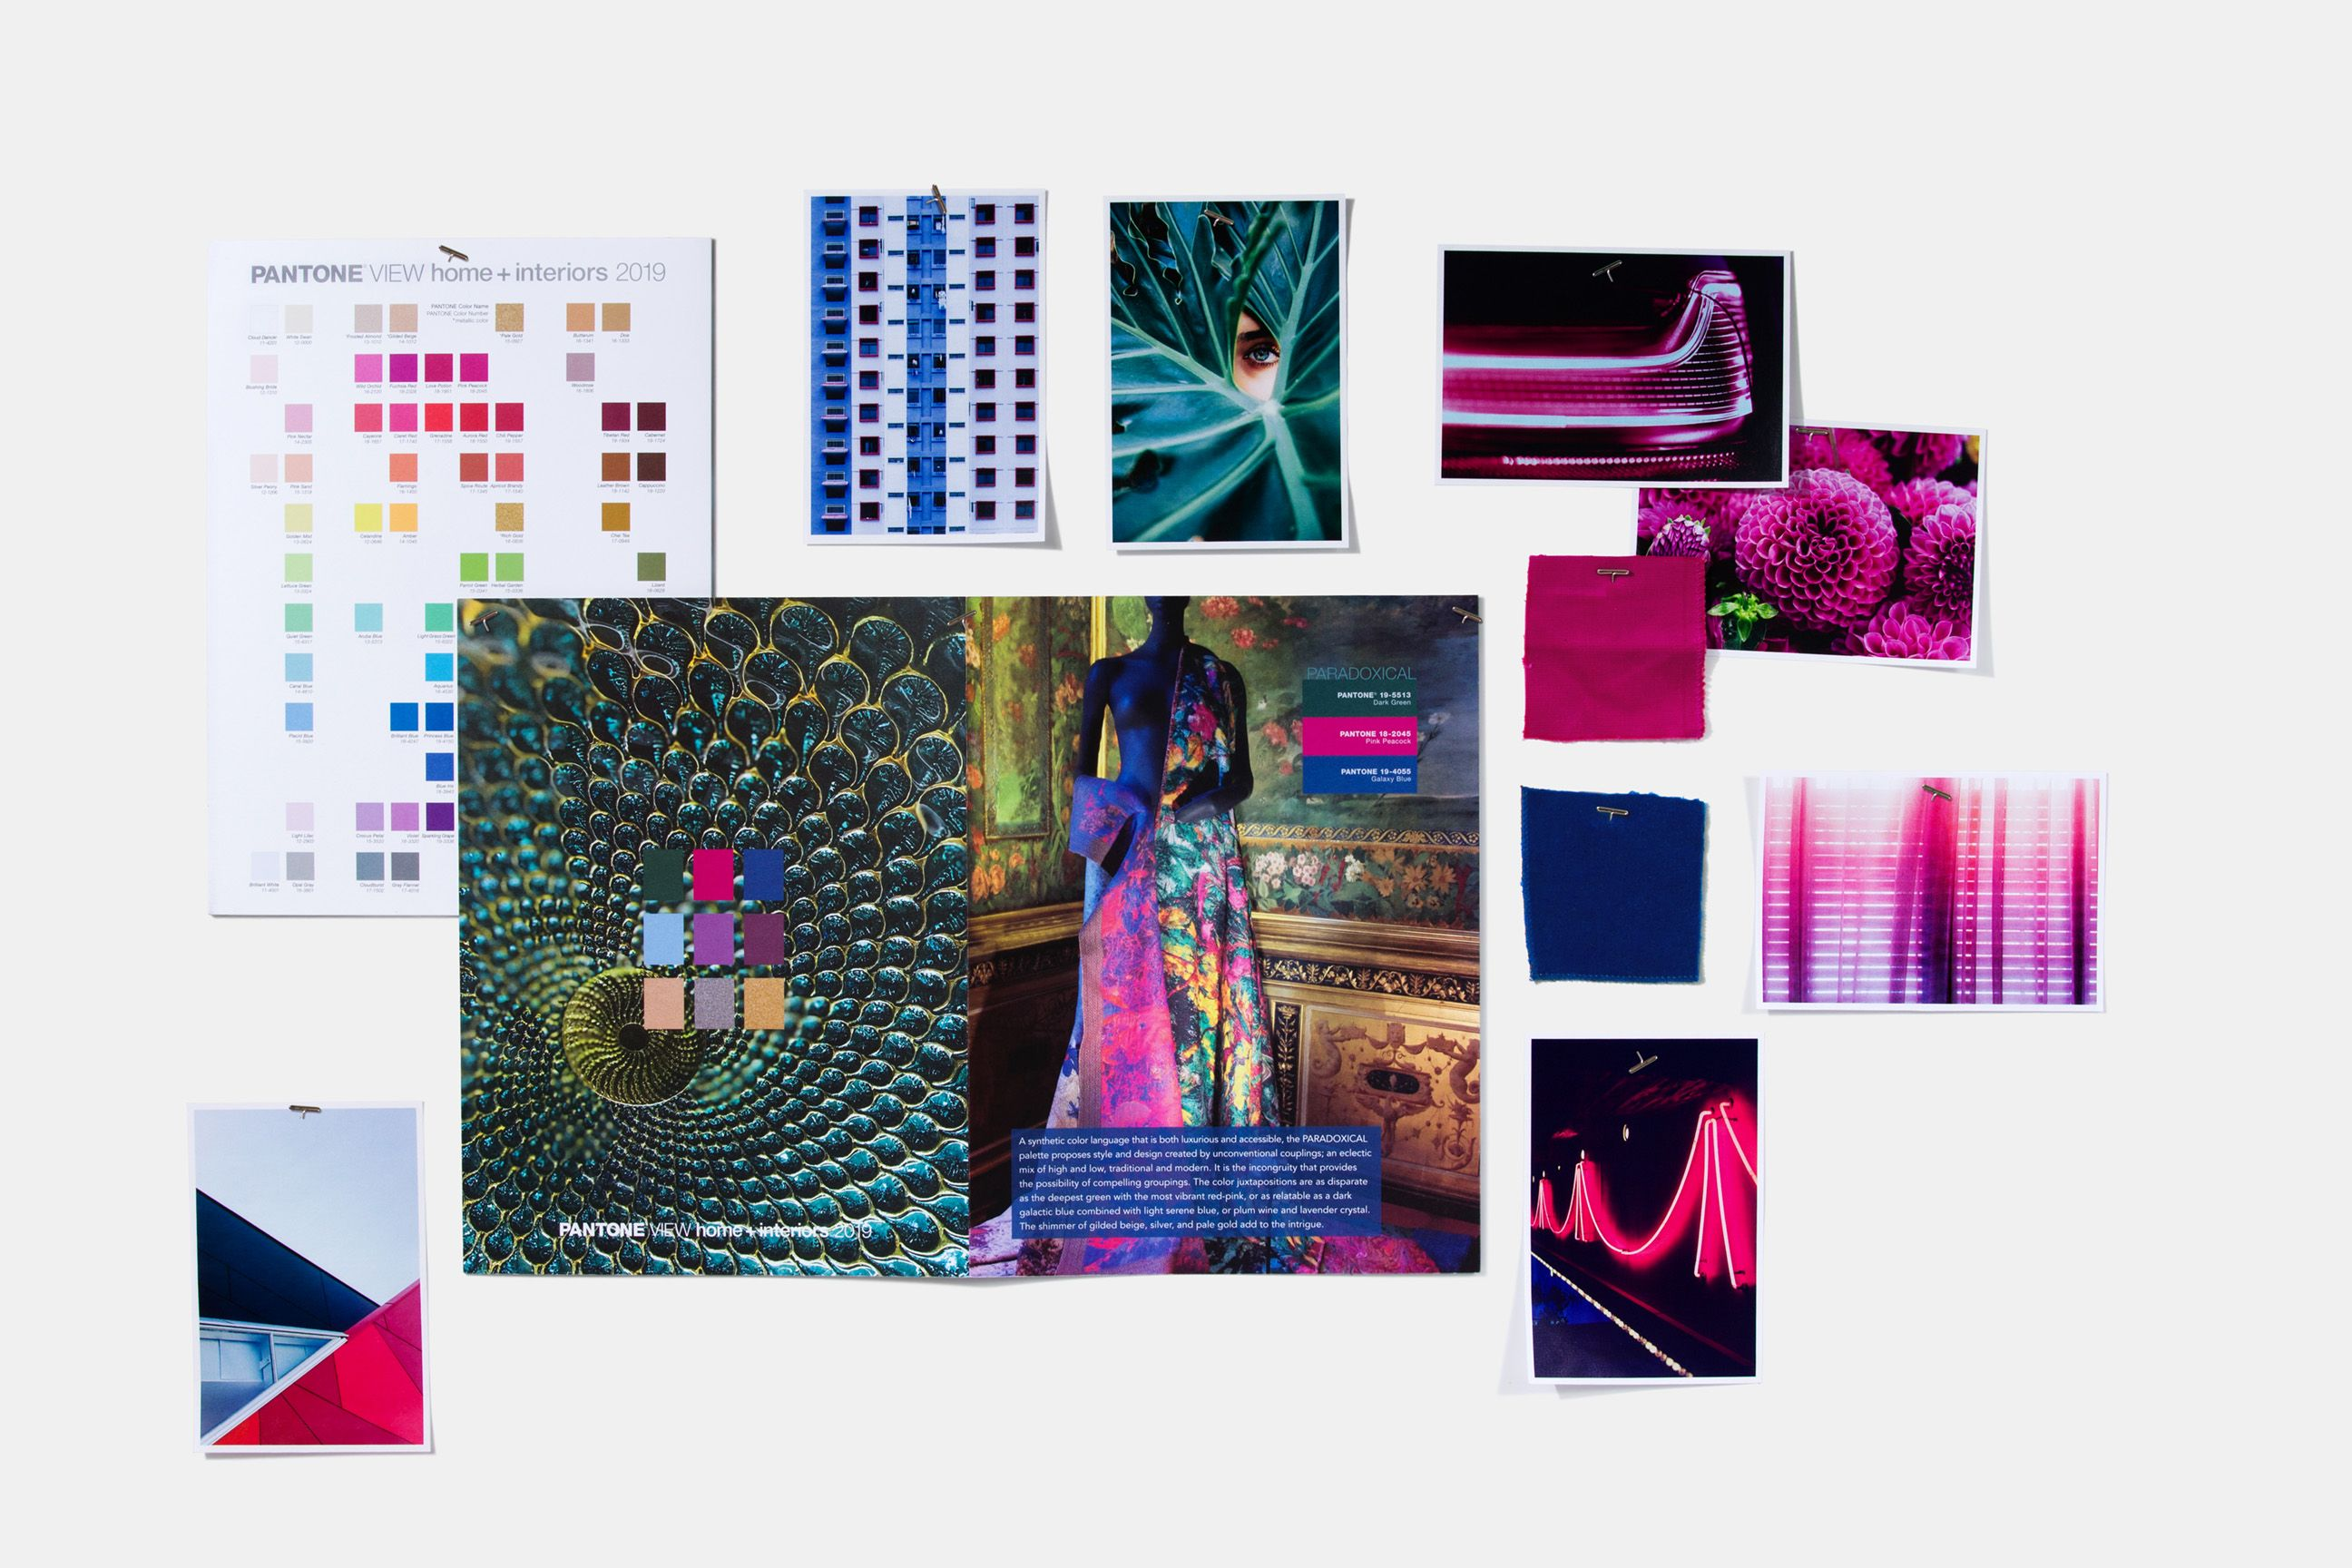 Pantone Color Trends For 2019 Pantone Forecasts Top New Colors